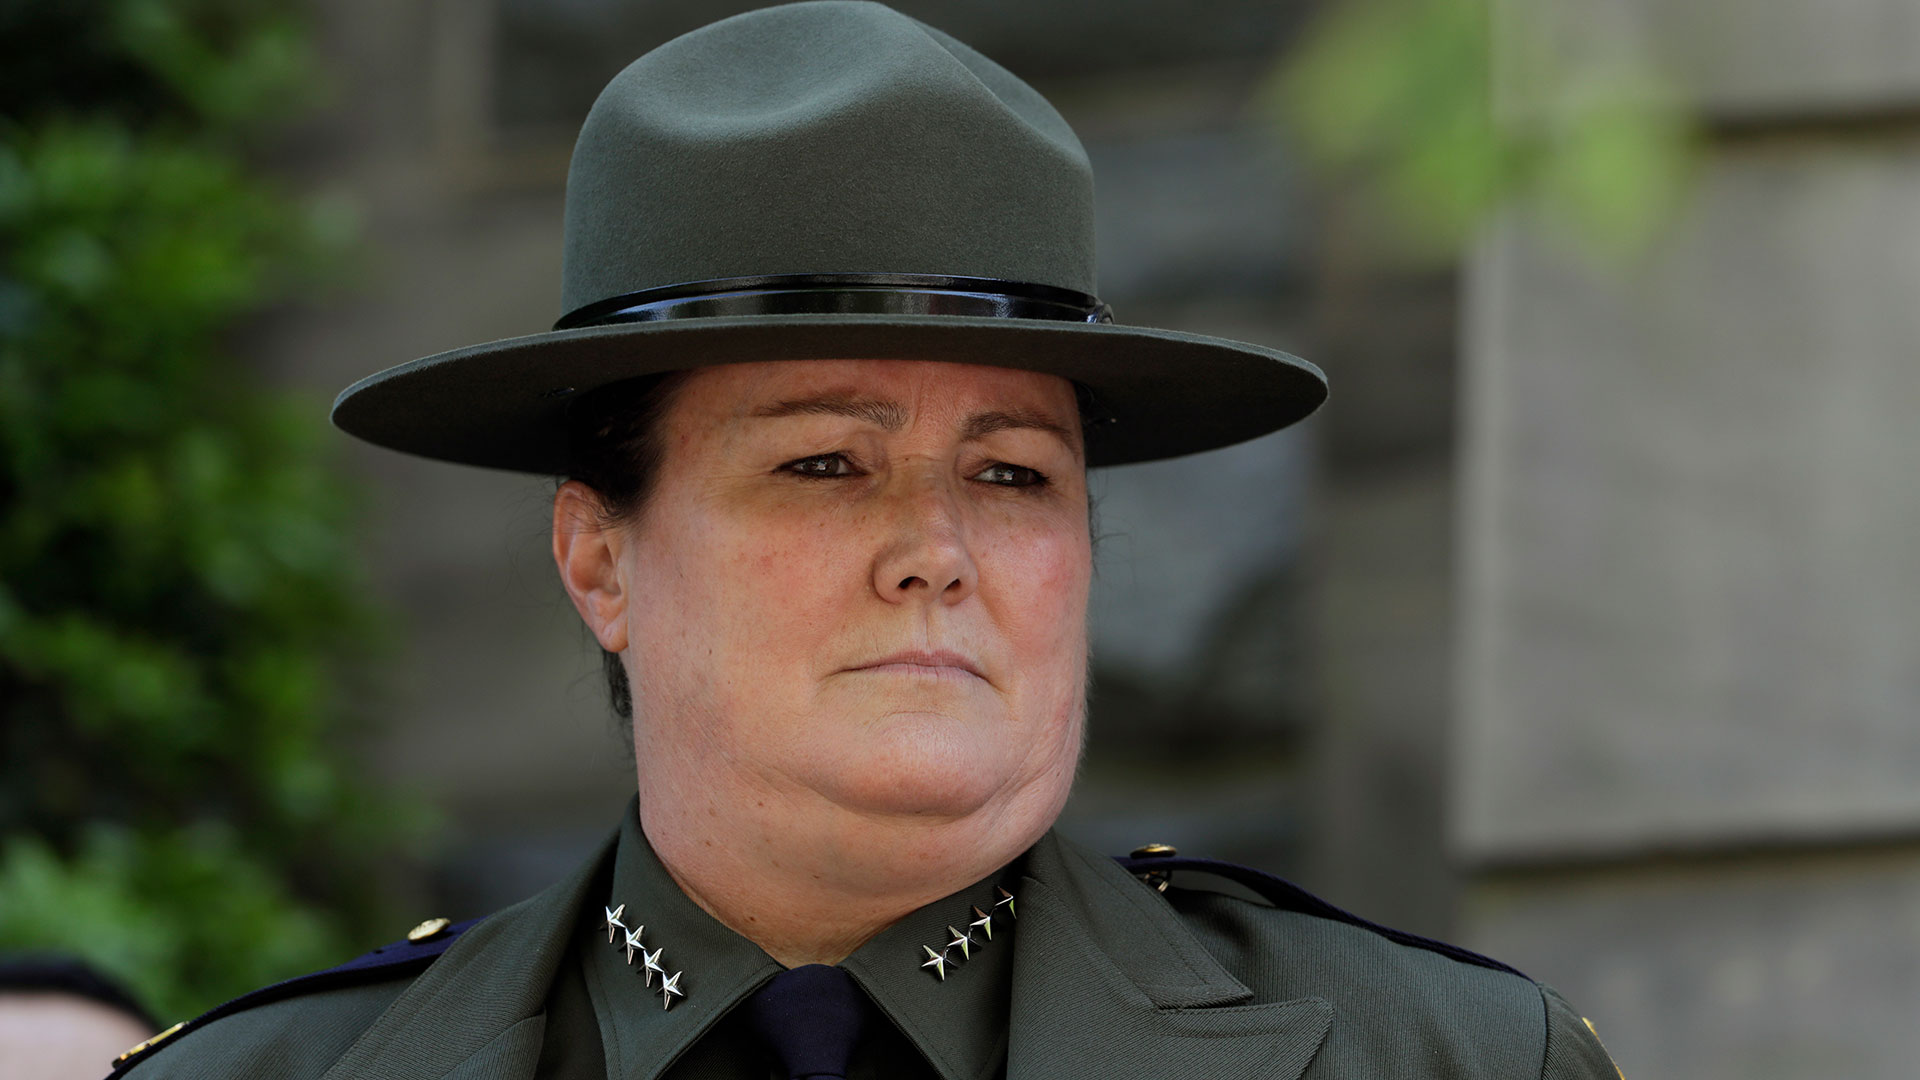 U.S. Border Patrol Chief Carla L. Provost May 7, 2019.